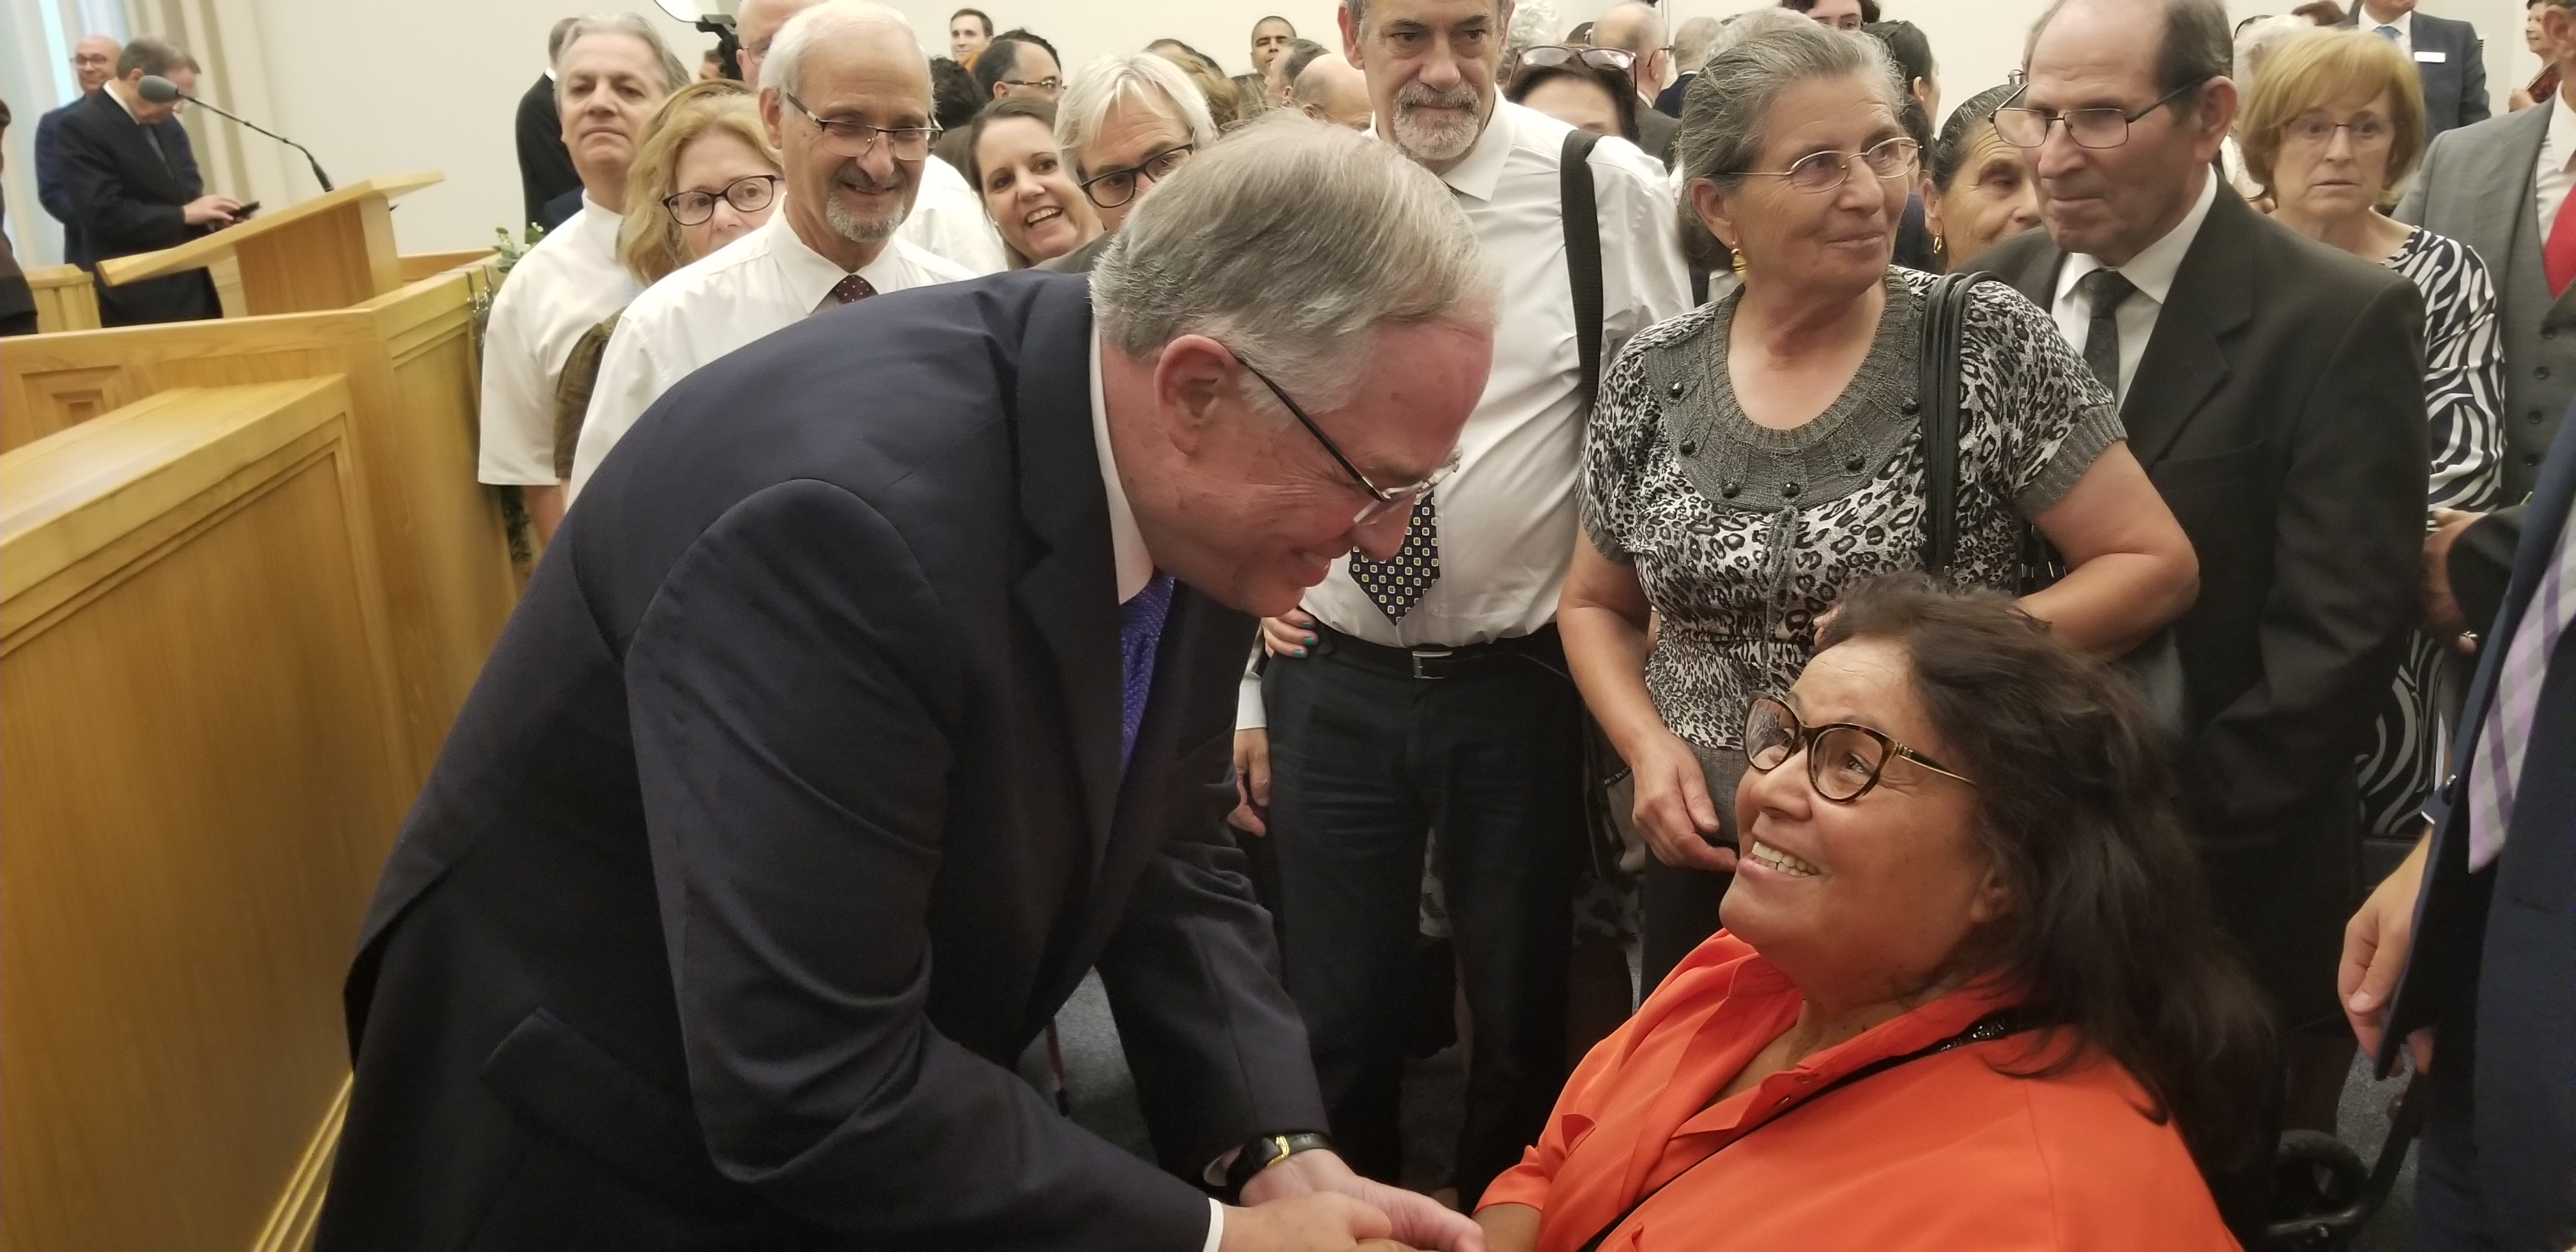 Elder Neil L. Andersen of the Quorum of the Twelve Apostles, right, greet individuals following a meeting with Portugal's pioneer Latter-day Saints on Saturday, Sept. 14, 2019, in Lisbon. The crowd of members in the meetinghouse chapel waiting to meet him is visible to his side and behind him.